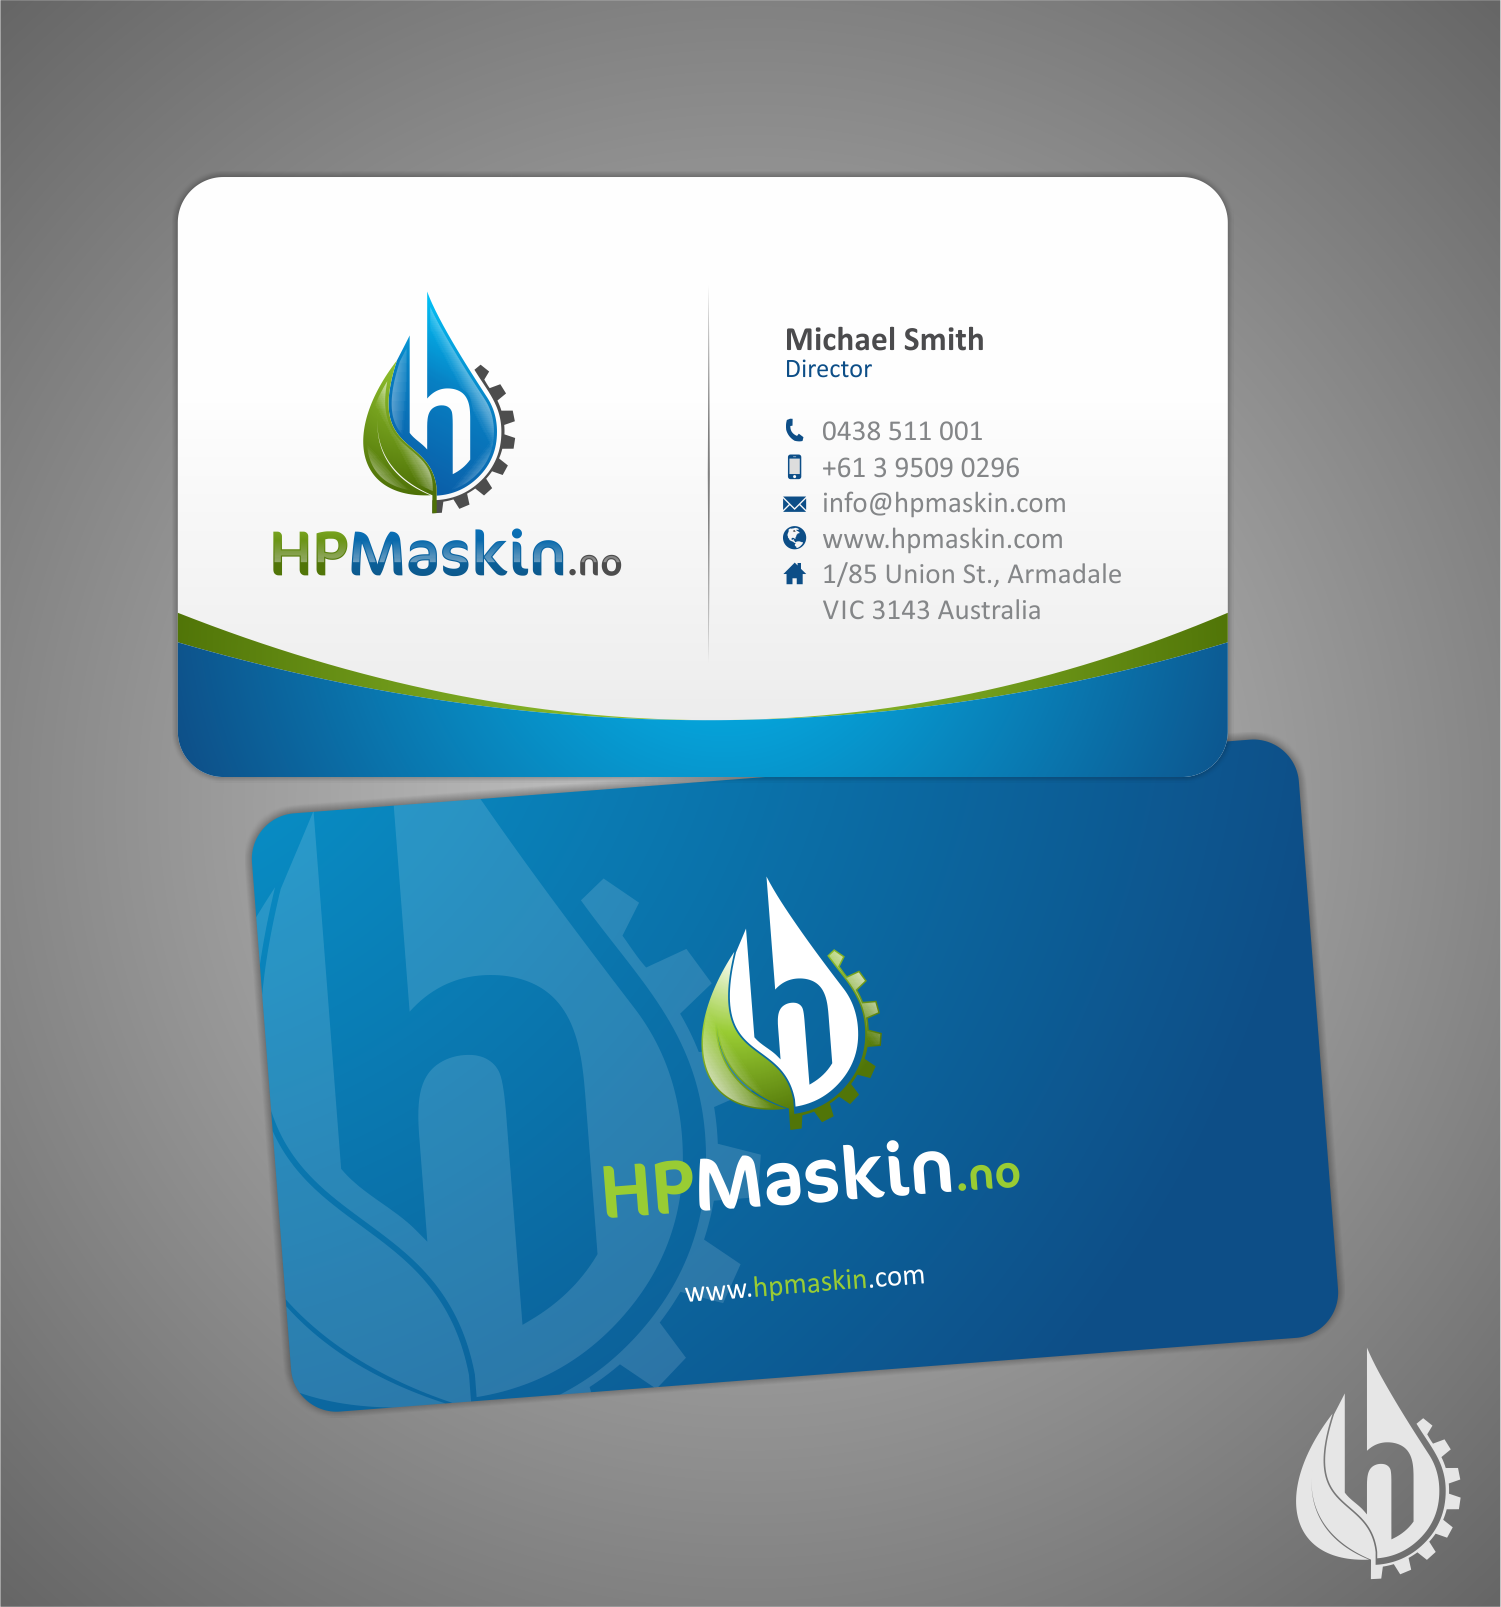 HPMaskin.no needs a new logo and business card